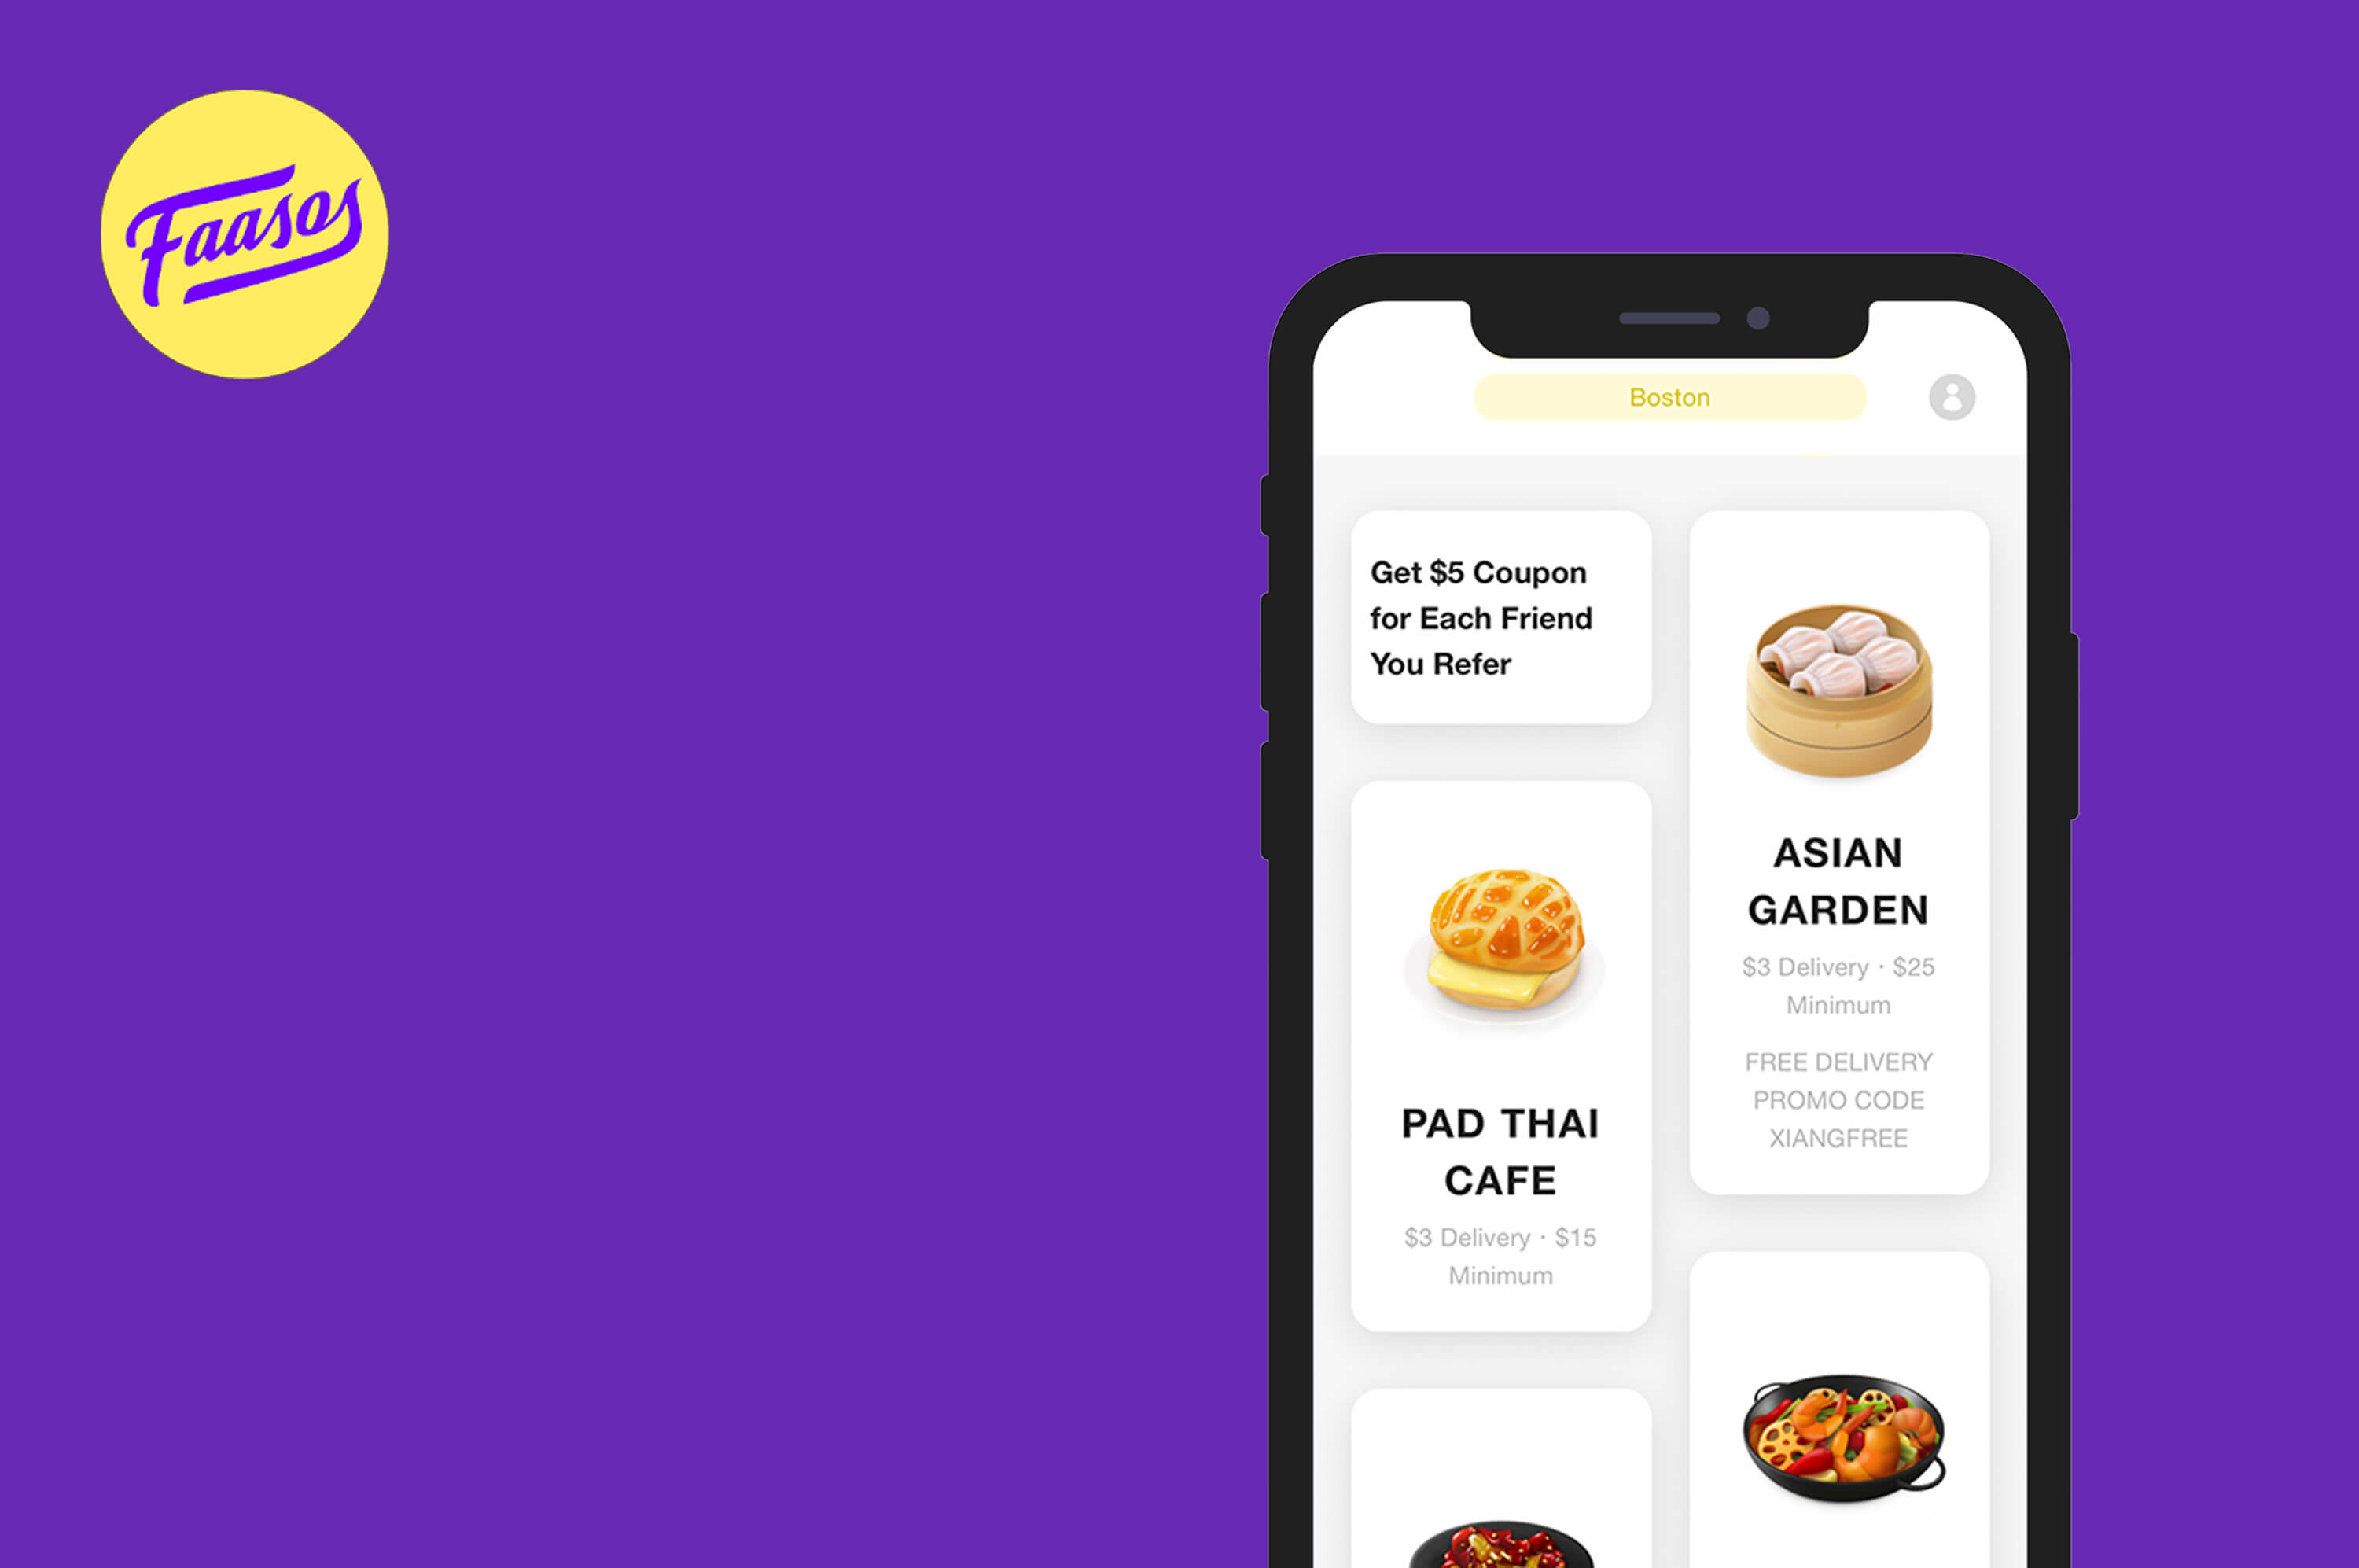 a smartphone with faasos app is opened